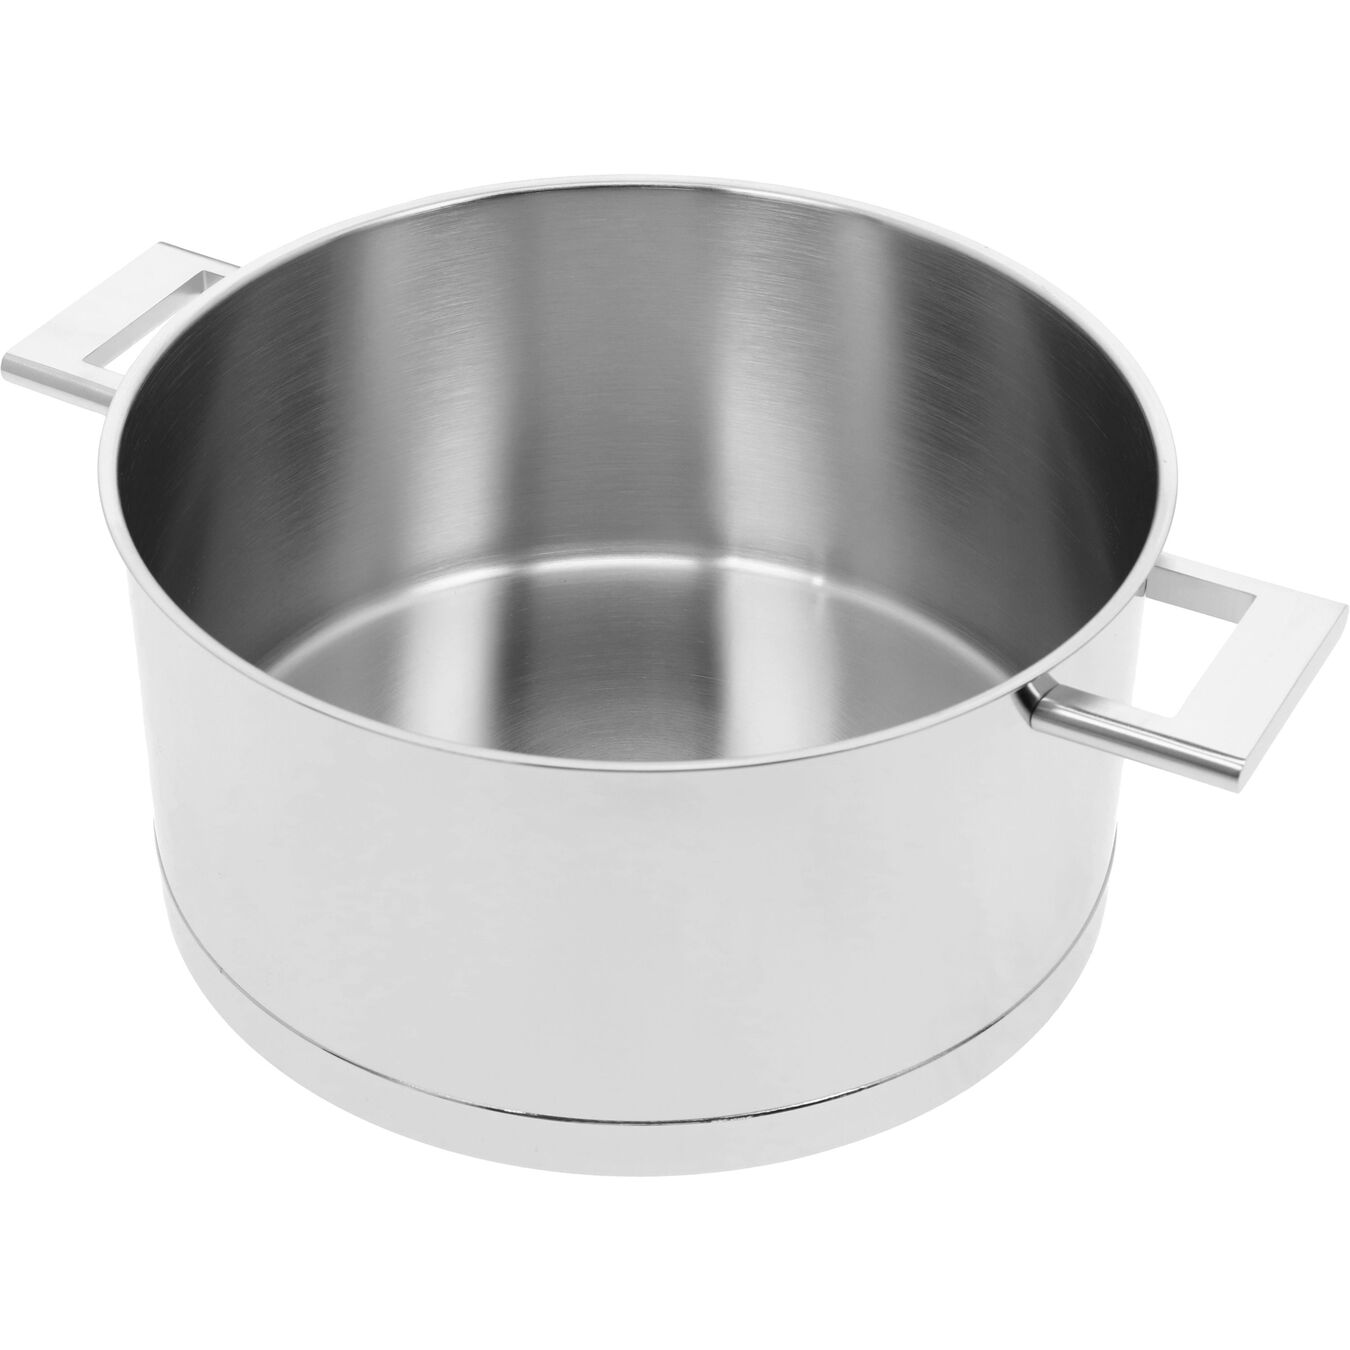 8.9 qt, 18/10 Stainless Steel, Dutch Oven with Lid,,large 5